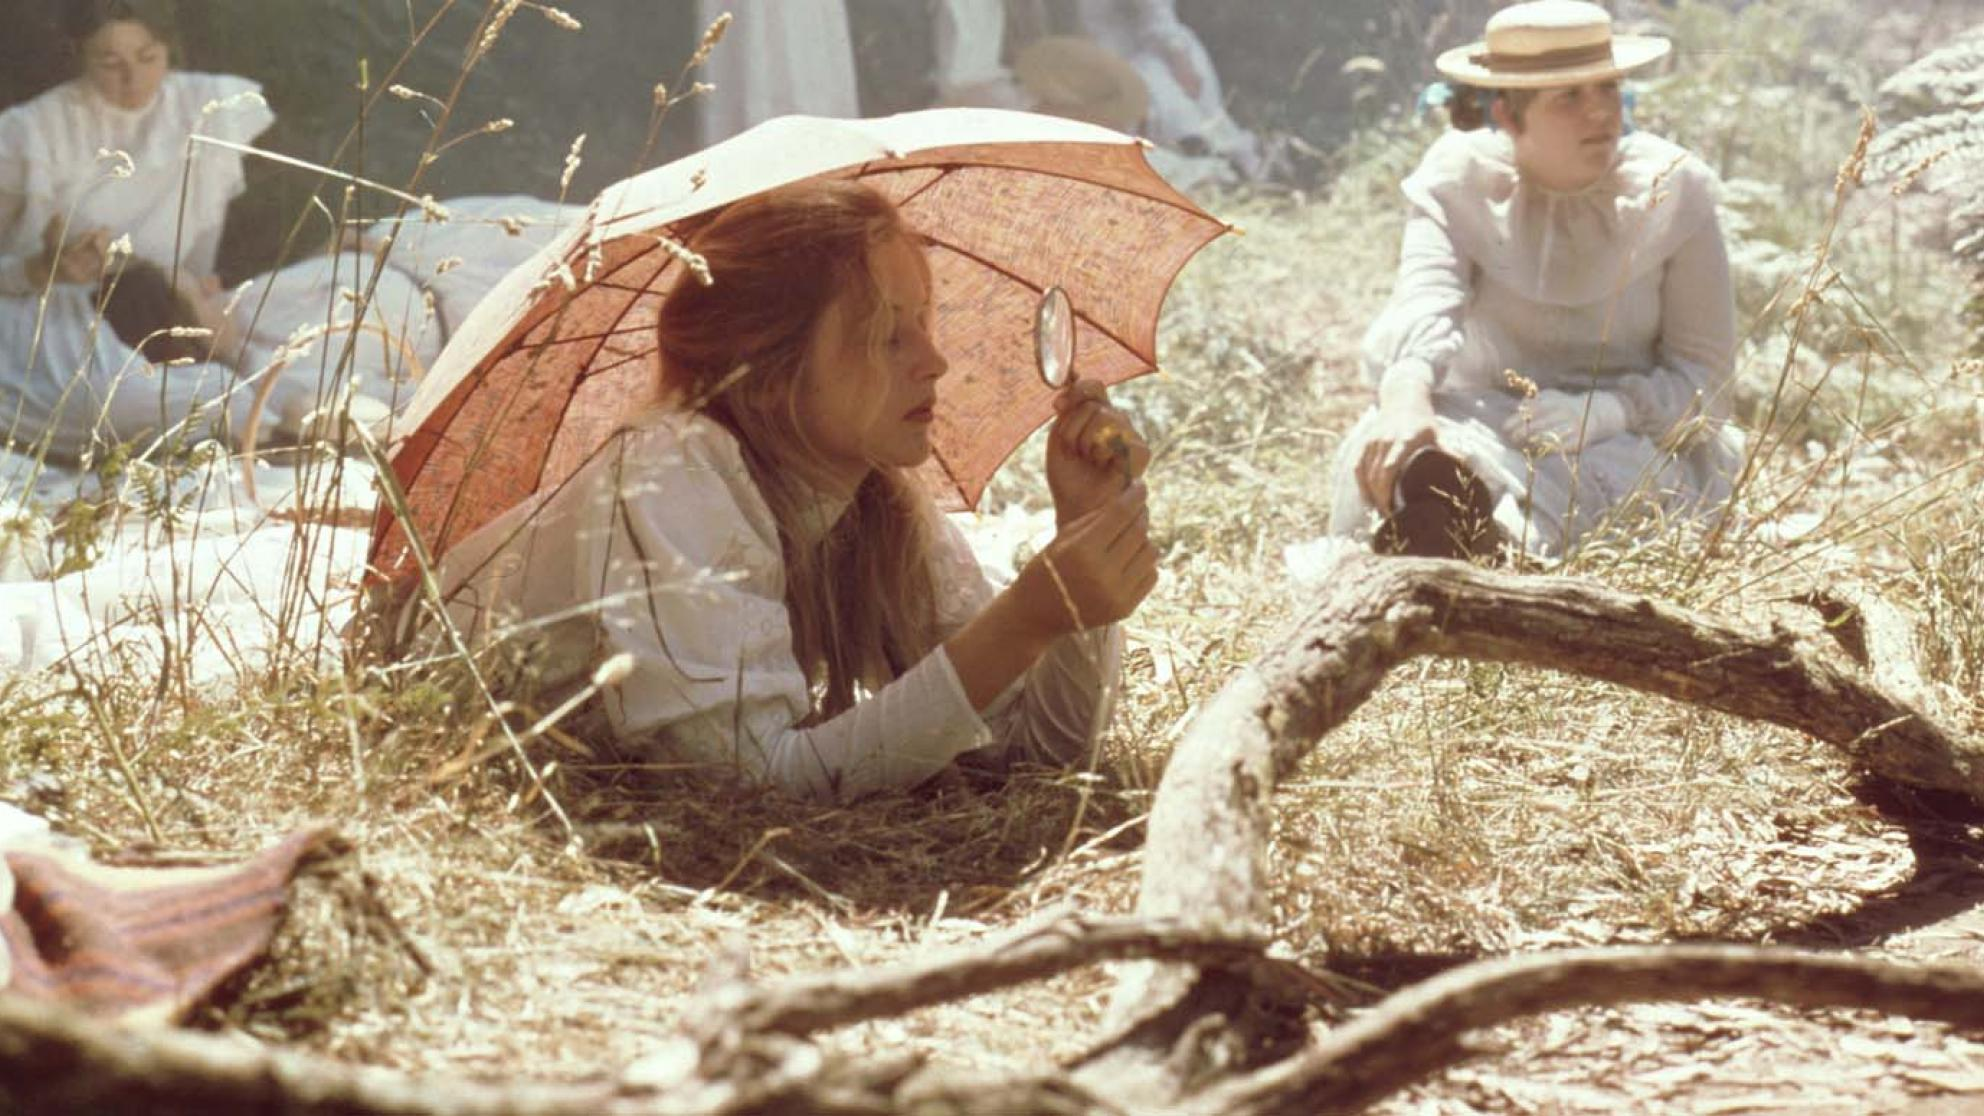 Miranda rests on the grass under a parasol and looks through a magnifying glass in a scene from the film Picnic at Hanging Rock